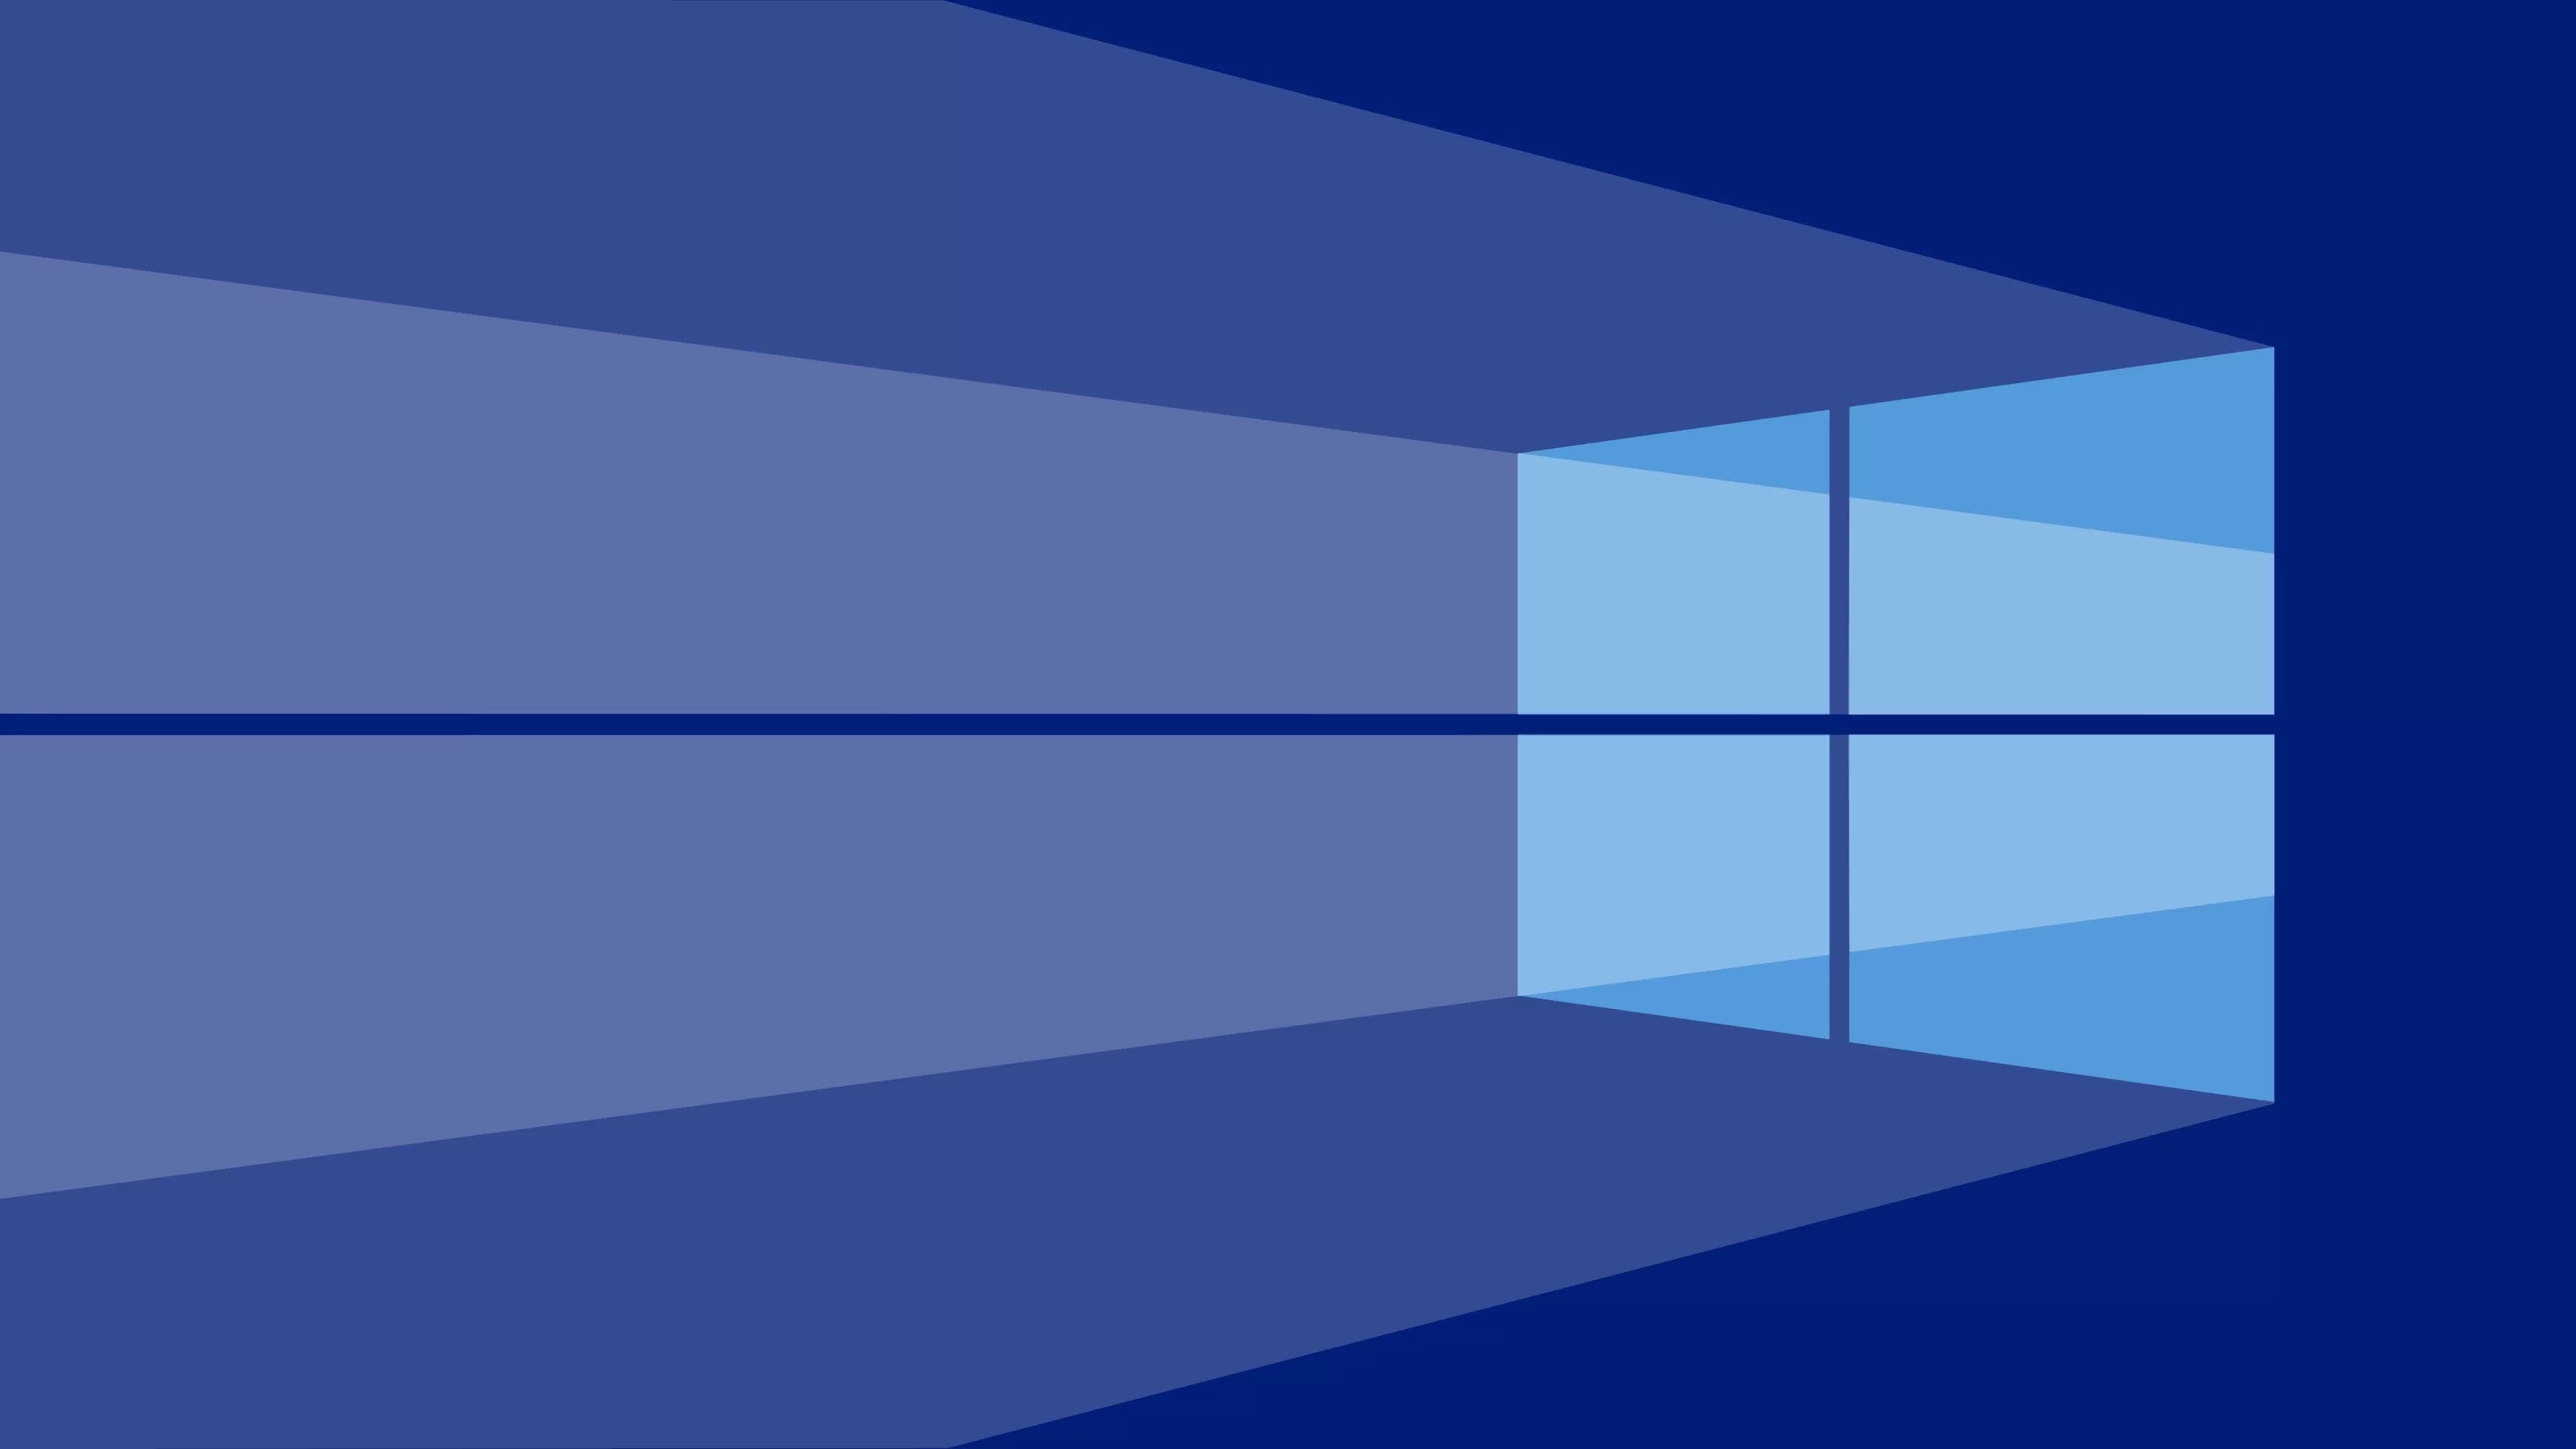 Upcoming Windows 10 update adds support for AAC Bluetooth audio